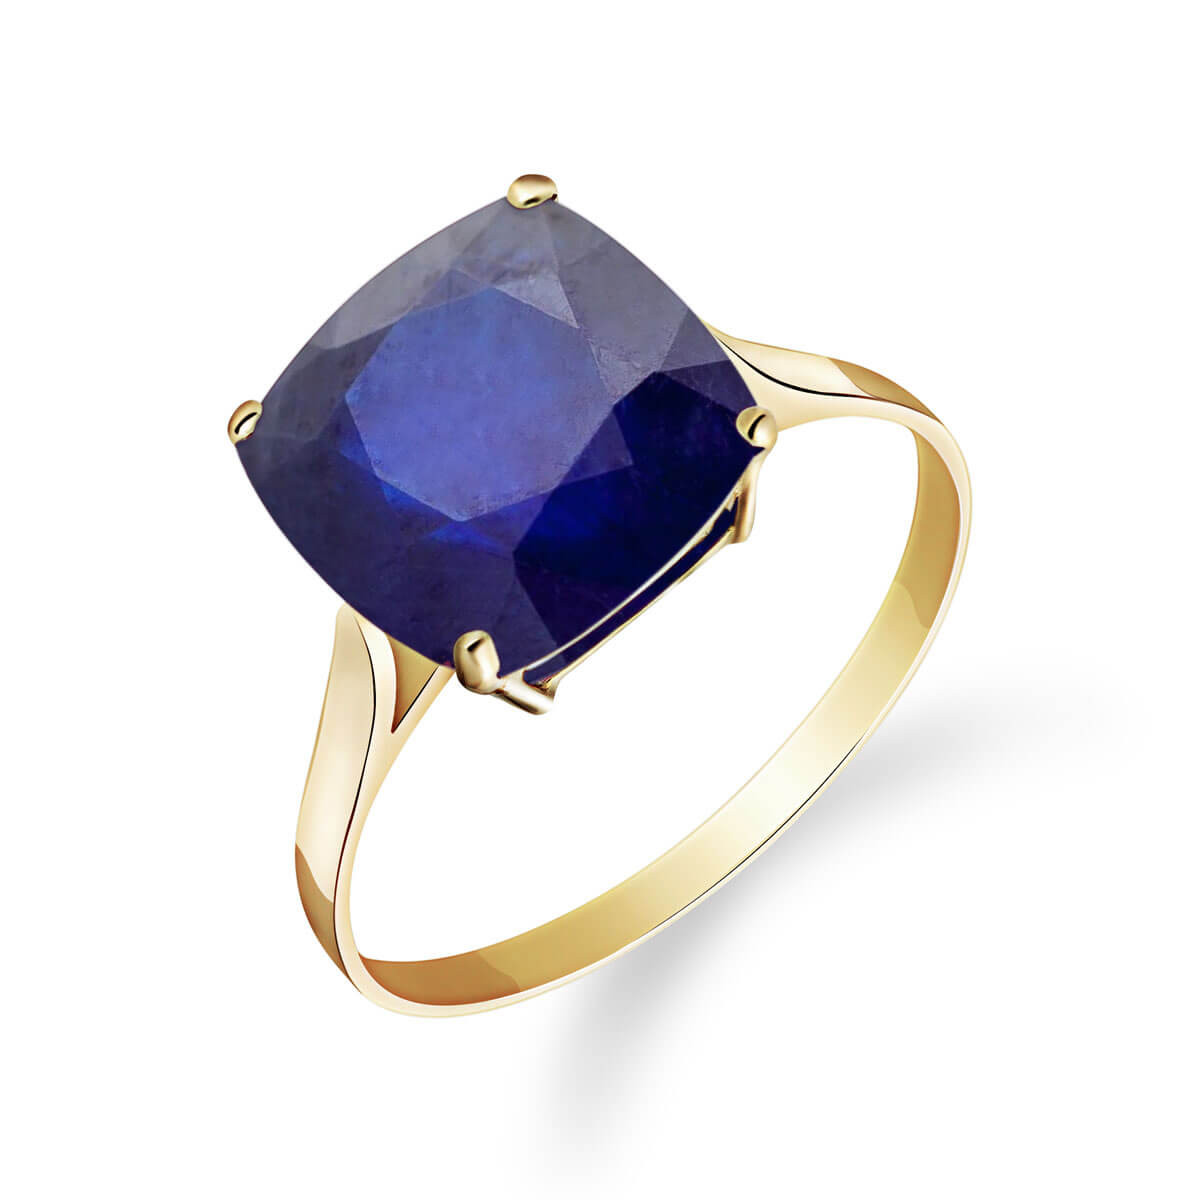 Sapphire Rococo Ring 4.83 ct in 9ct Gold